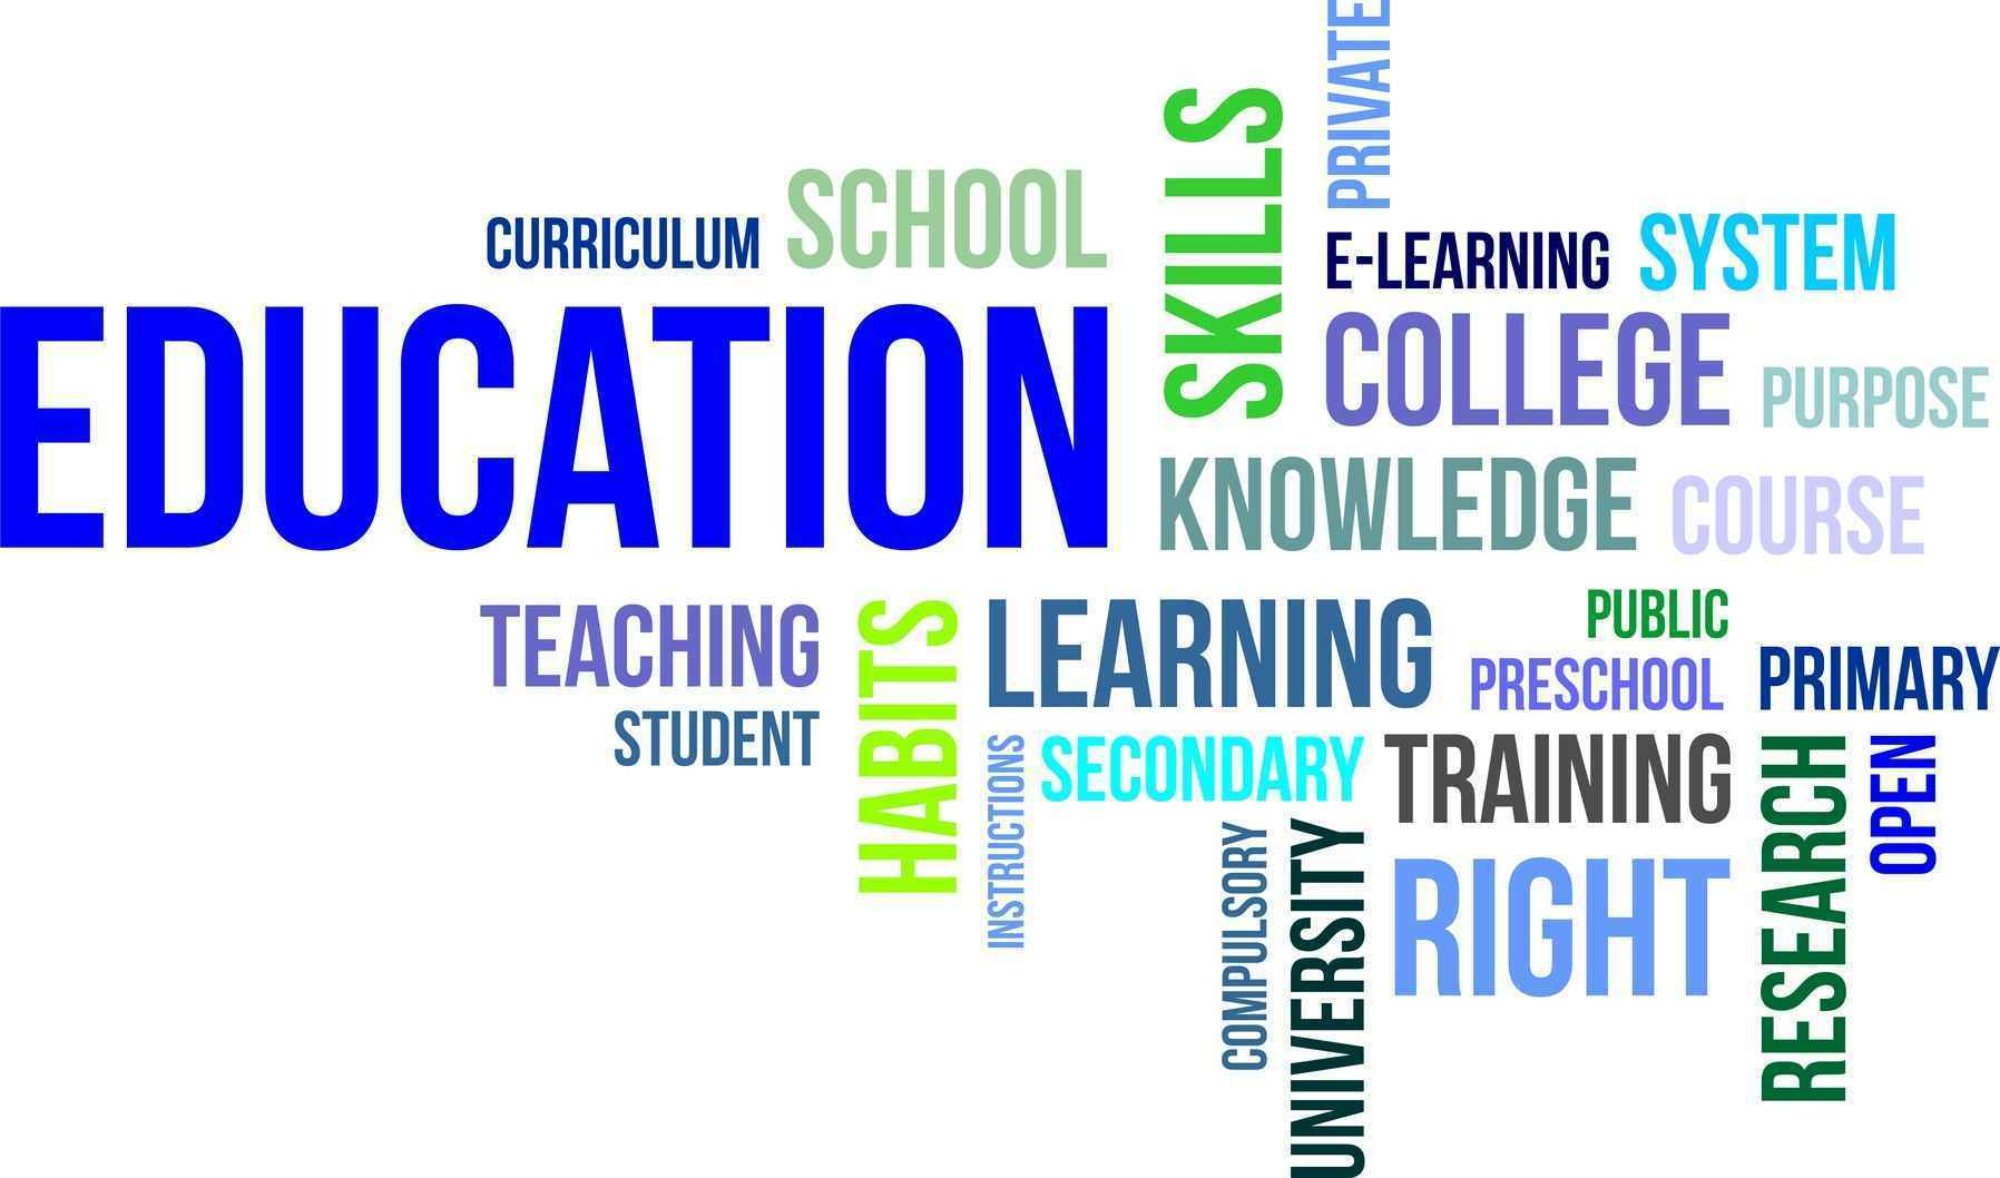 essay on education system in india in 200 words